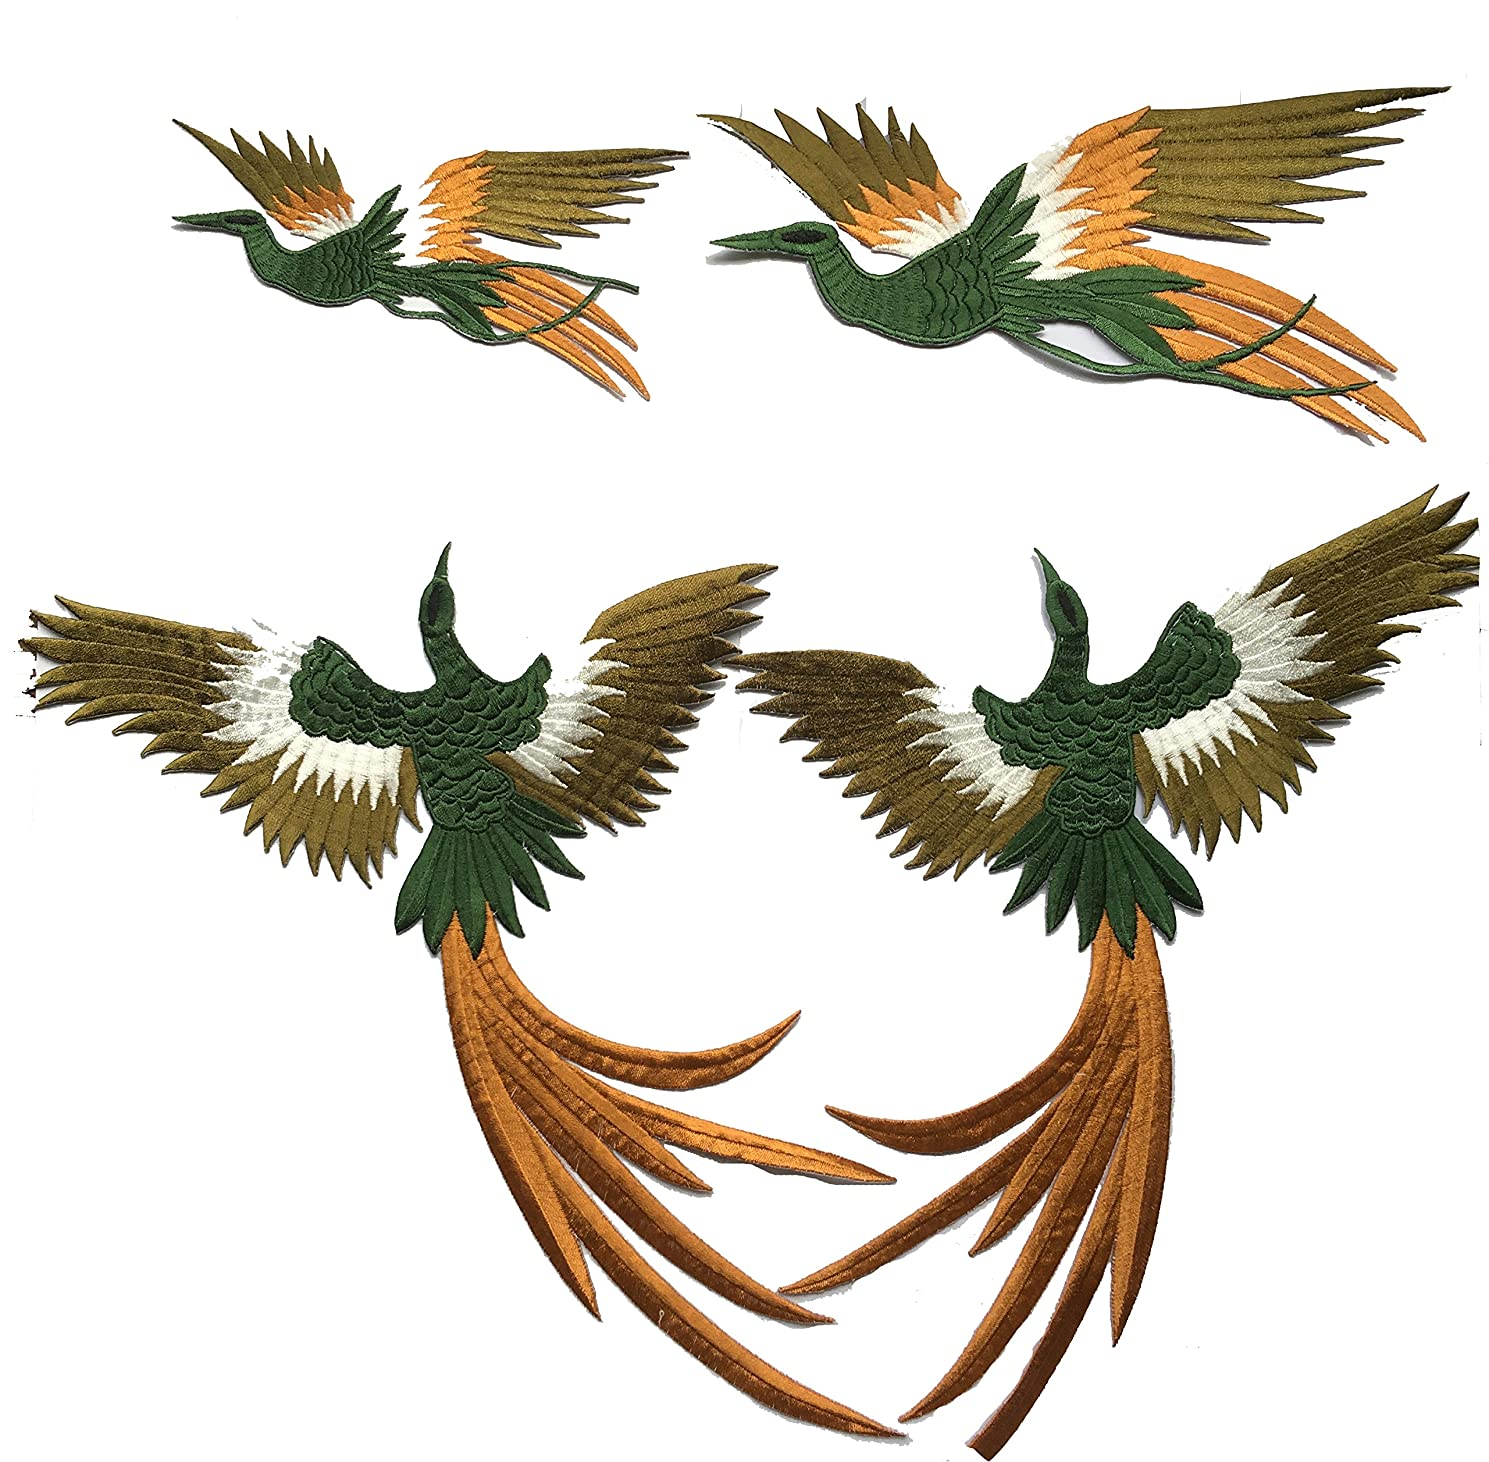 Four Phoenix Set Applique Sewn On or Iron on Patches Embroidered Garment DIY Accessory